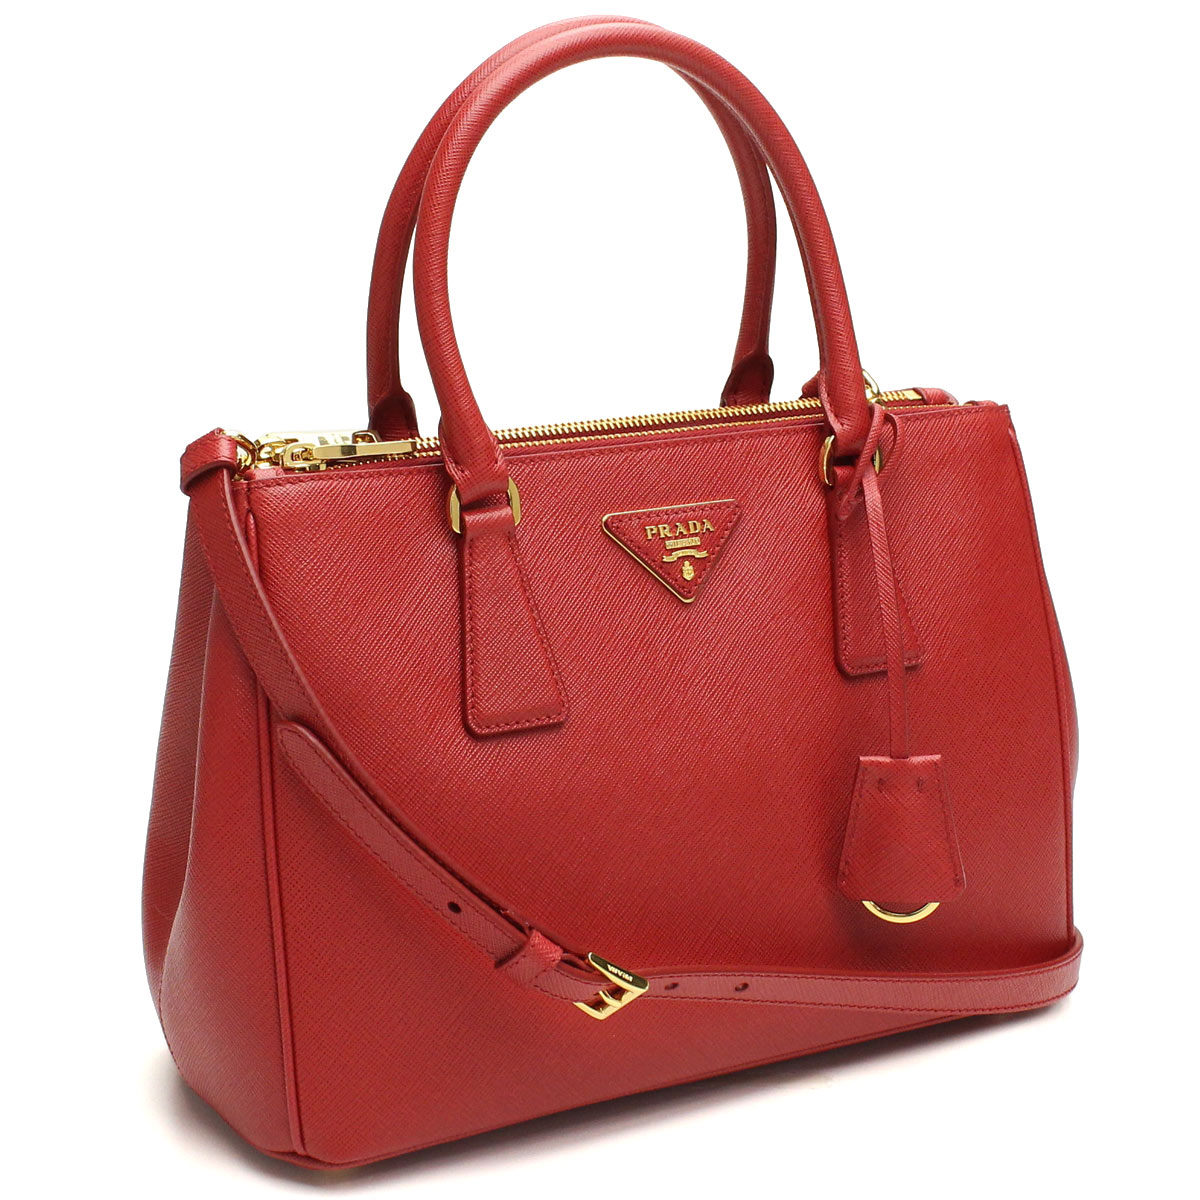 4c719360d38585 Bighit The total brand wholesale: Prada (PRADA) tote bag NZV-F068Z FUOCO  red series( taxfree/send by EMS/authentic/A brand new item ) | Rakuten  Global ...